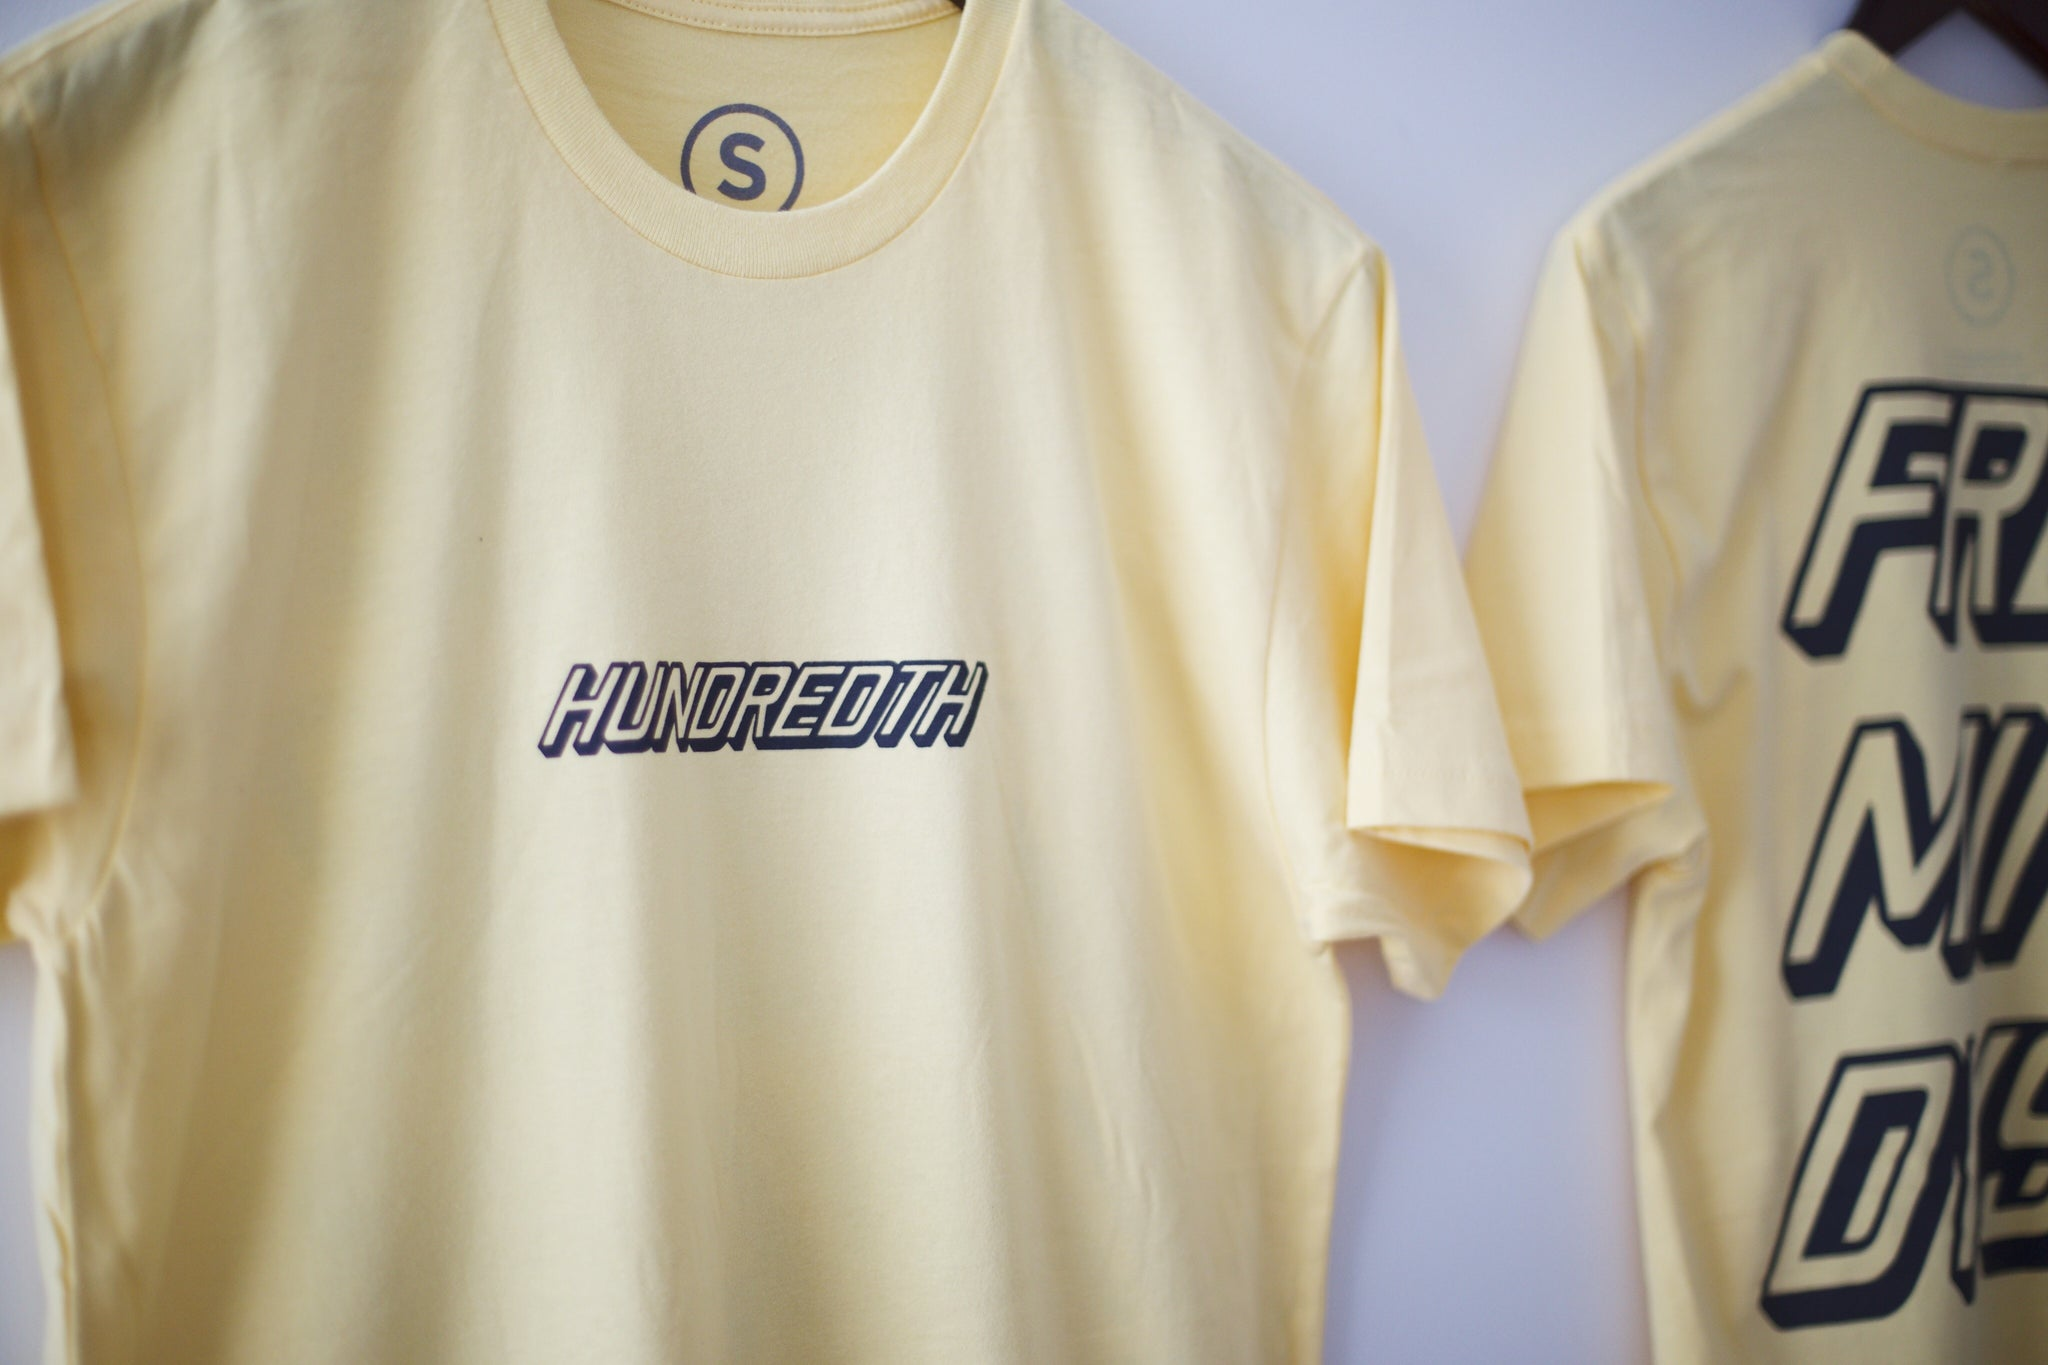 THE RETRO TEE (BANANA)